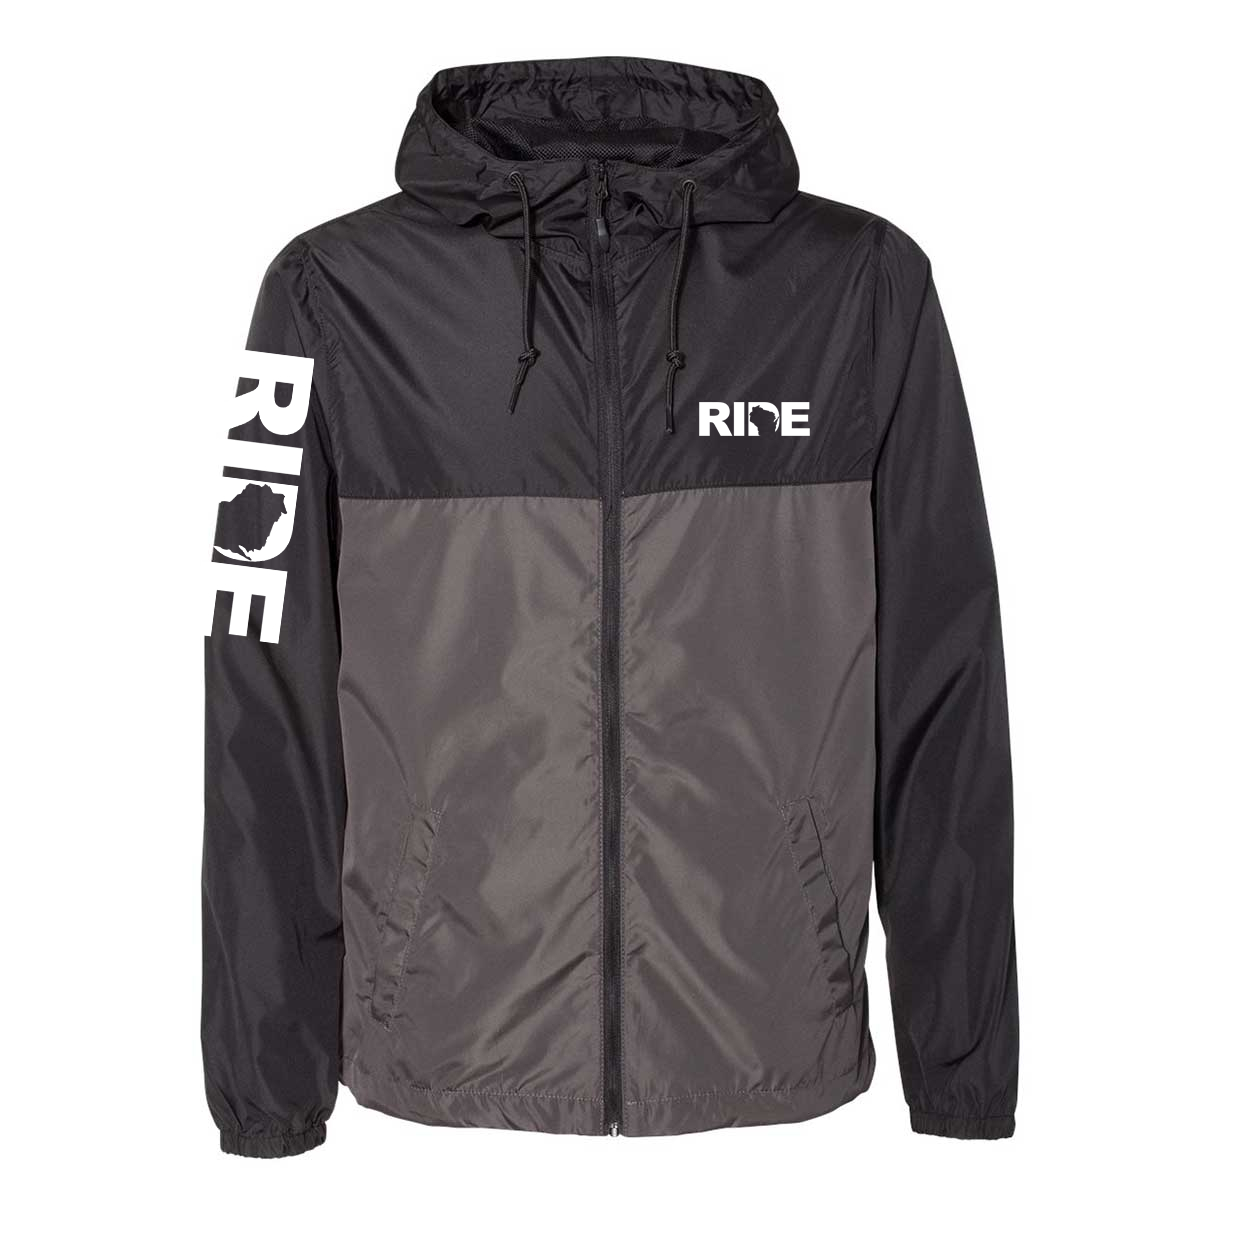 Ride Wisconsin Classic Lightweight Windbreaker Black/Graphite (White Logo)